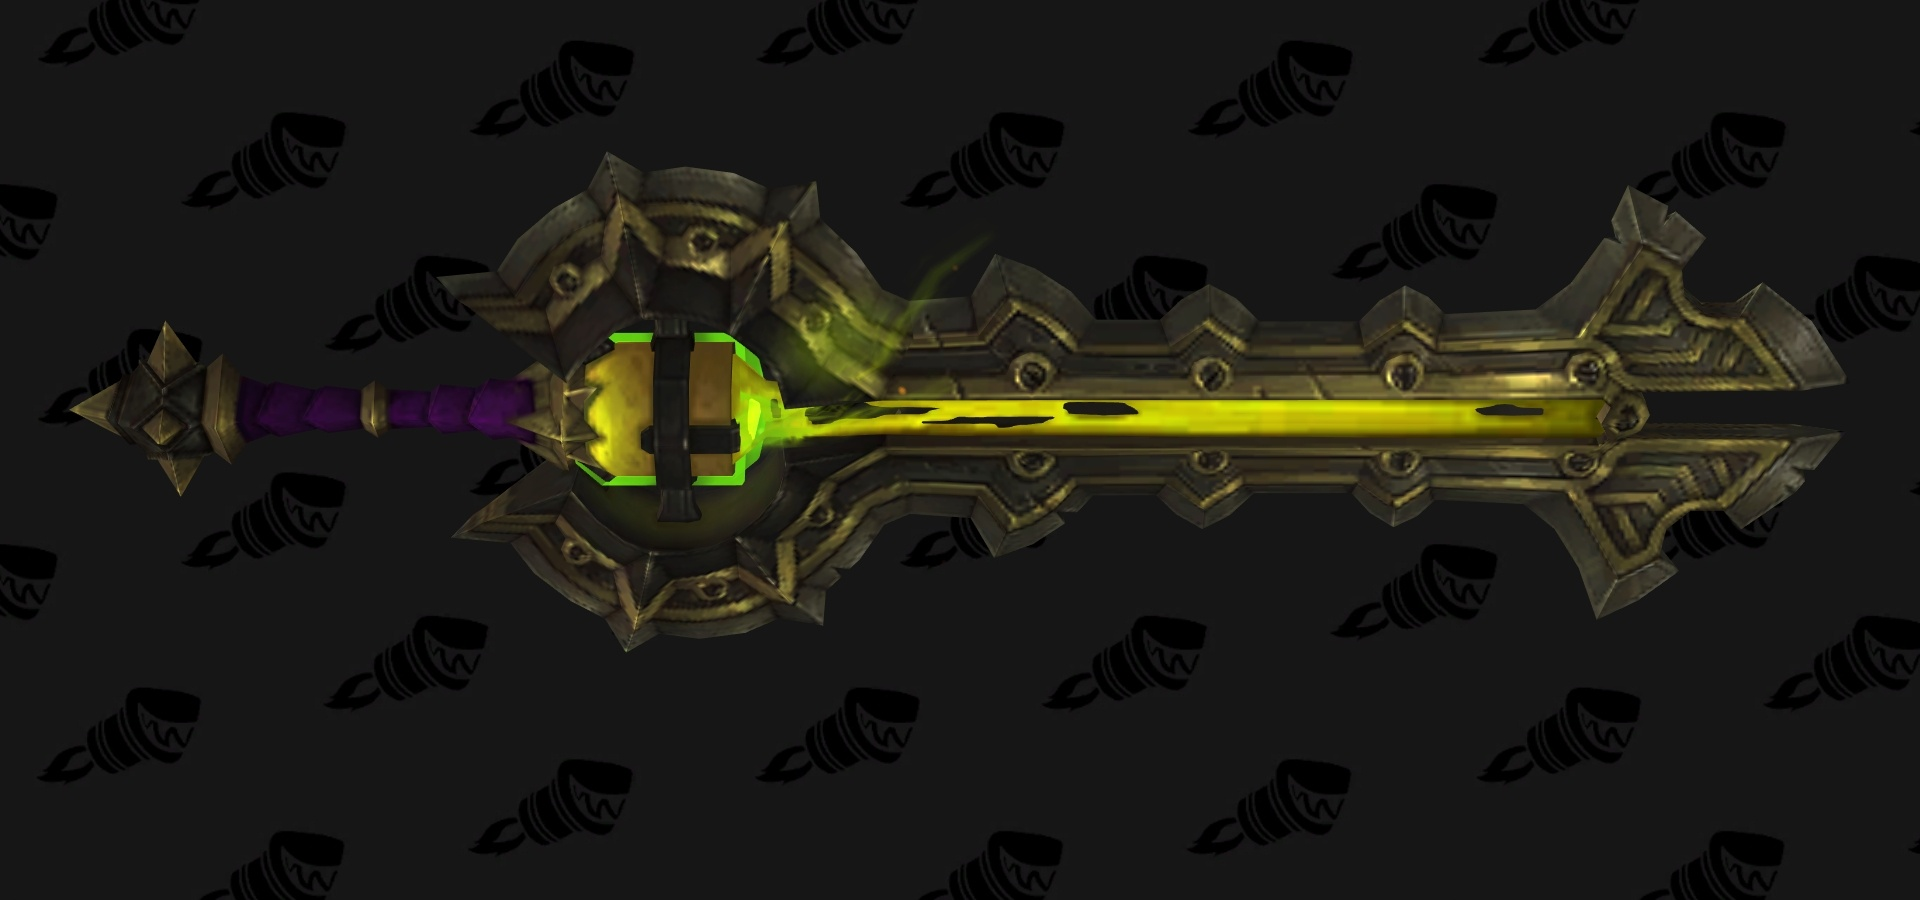 Arms Warrior Artifact Weapon: Strom'kar the Warbreaker - Guides